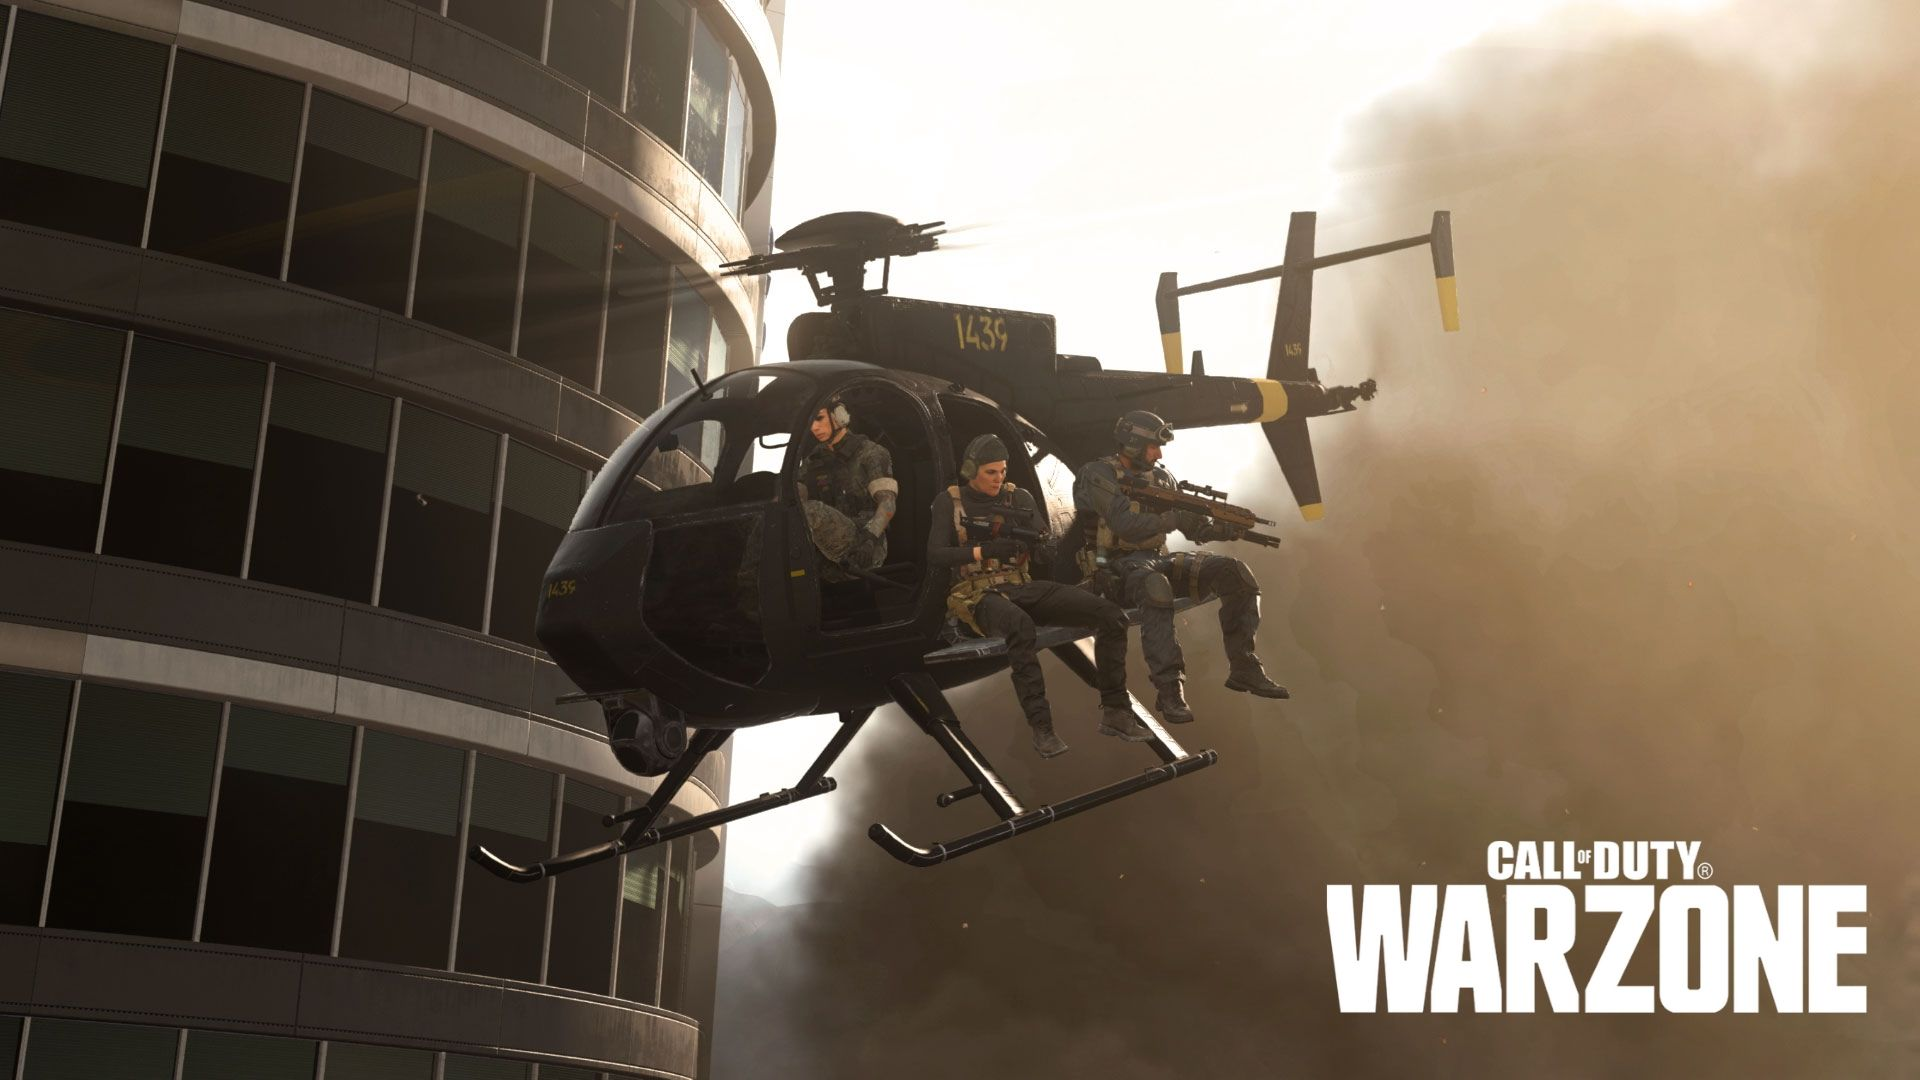 warzone helicopter